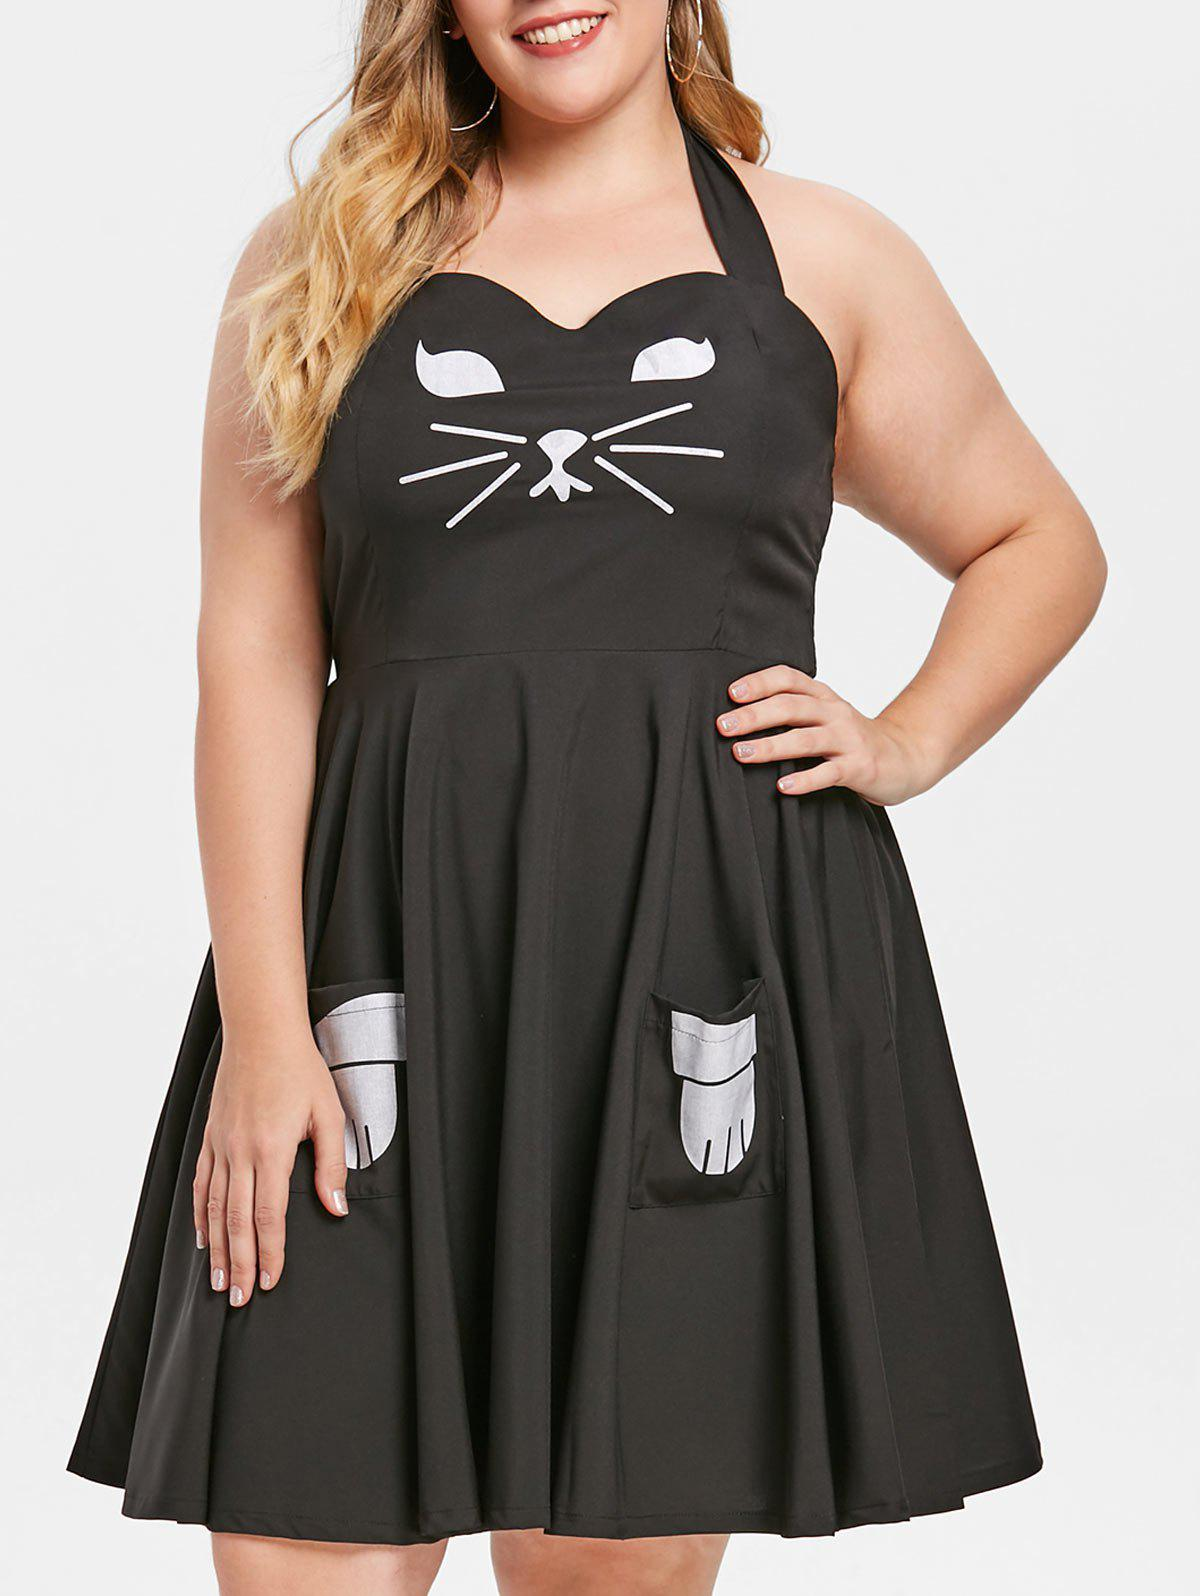 Unique Cat Cosplay Plus Size Pinafore Dress